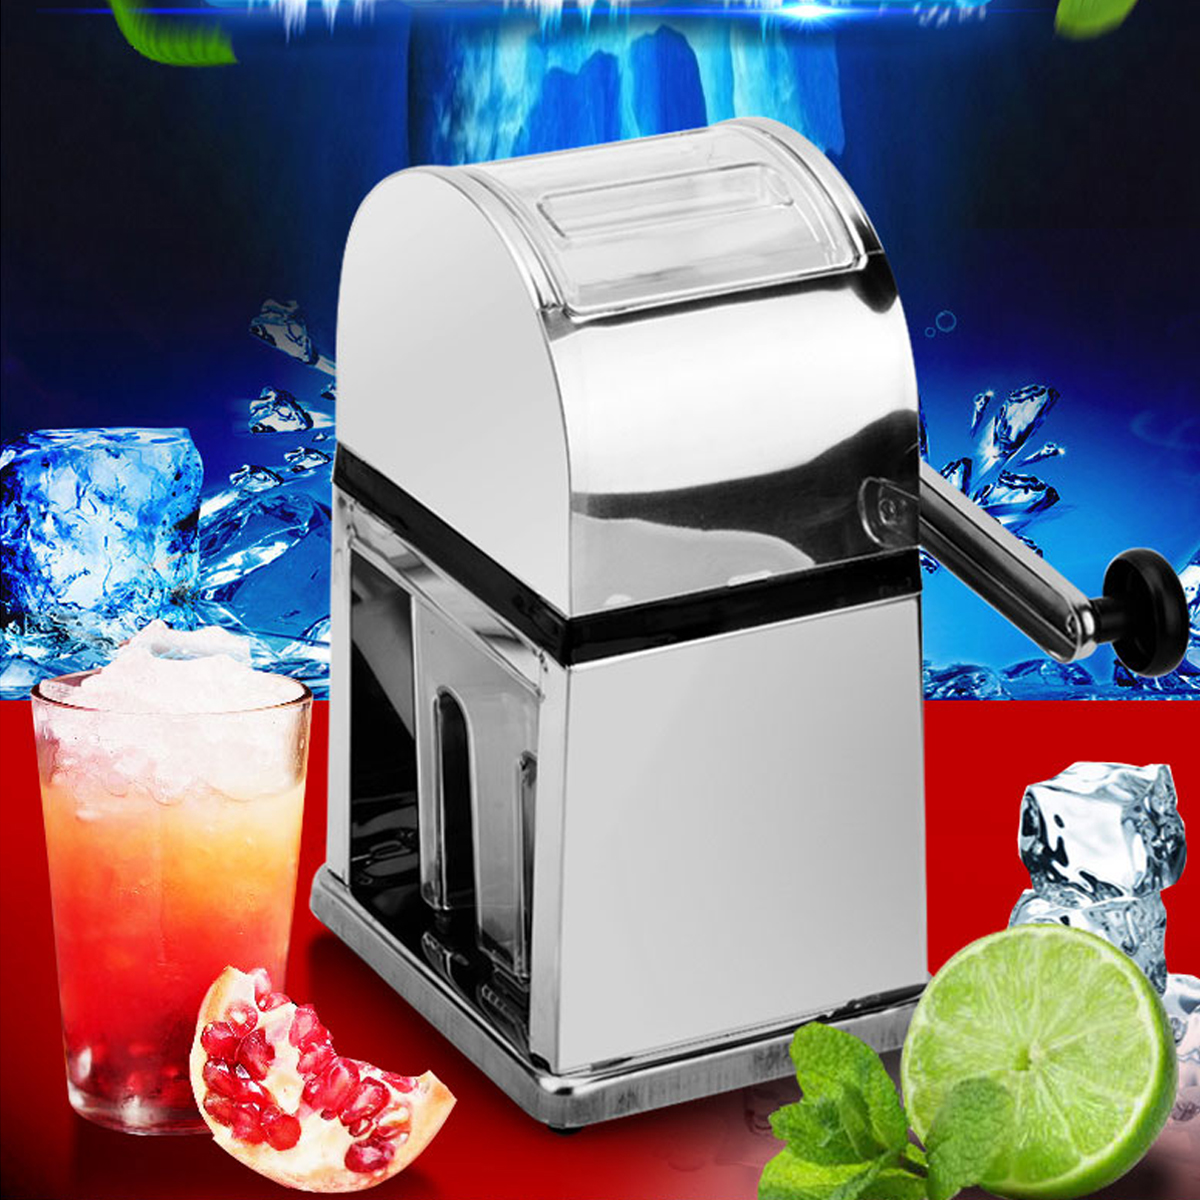 warmtoo Stainless Steel Home Bar Manual Ice Crusher Shaver Machine Tray Scoop Ice Maker ice crusher summer sweetmeats sweet ice food making machine manual fruit ice shaver machine zf